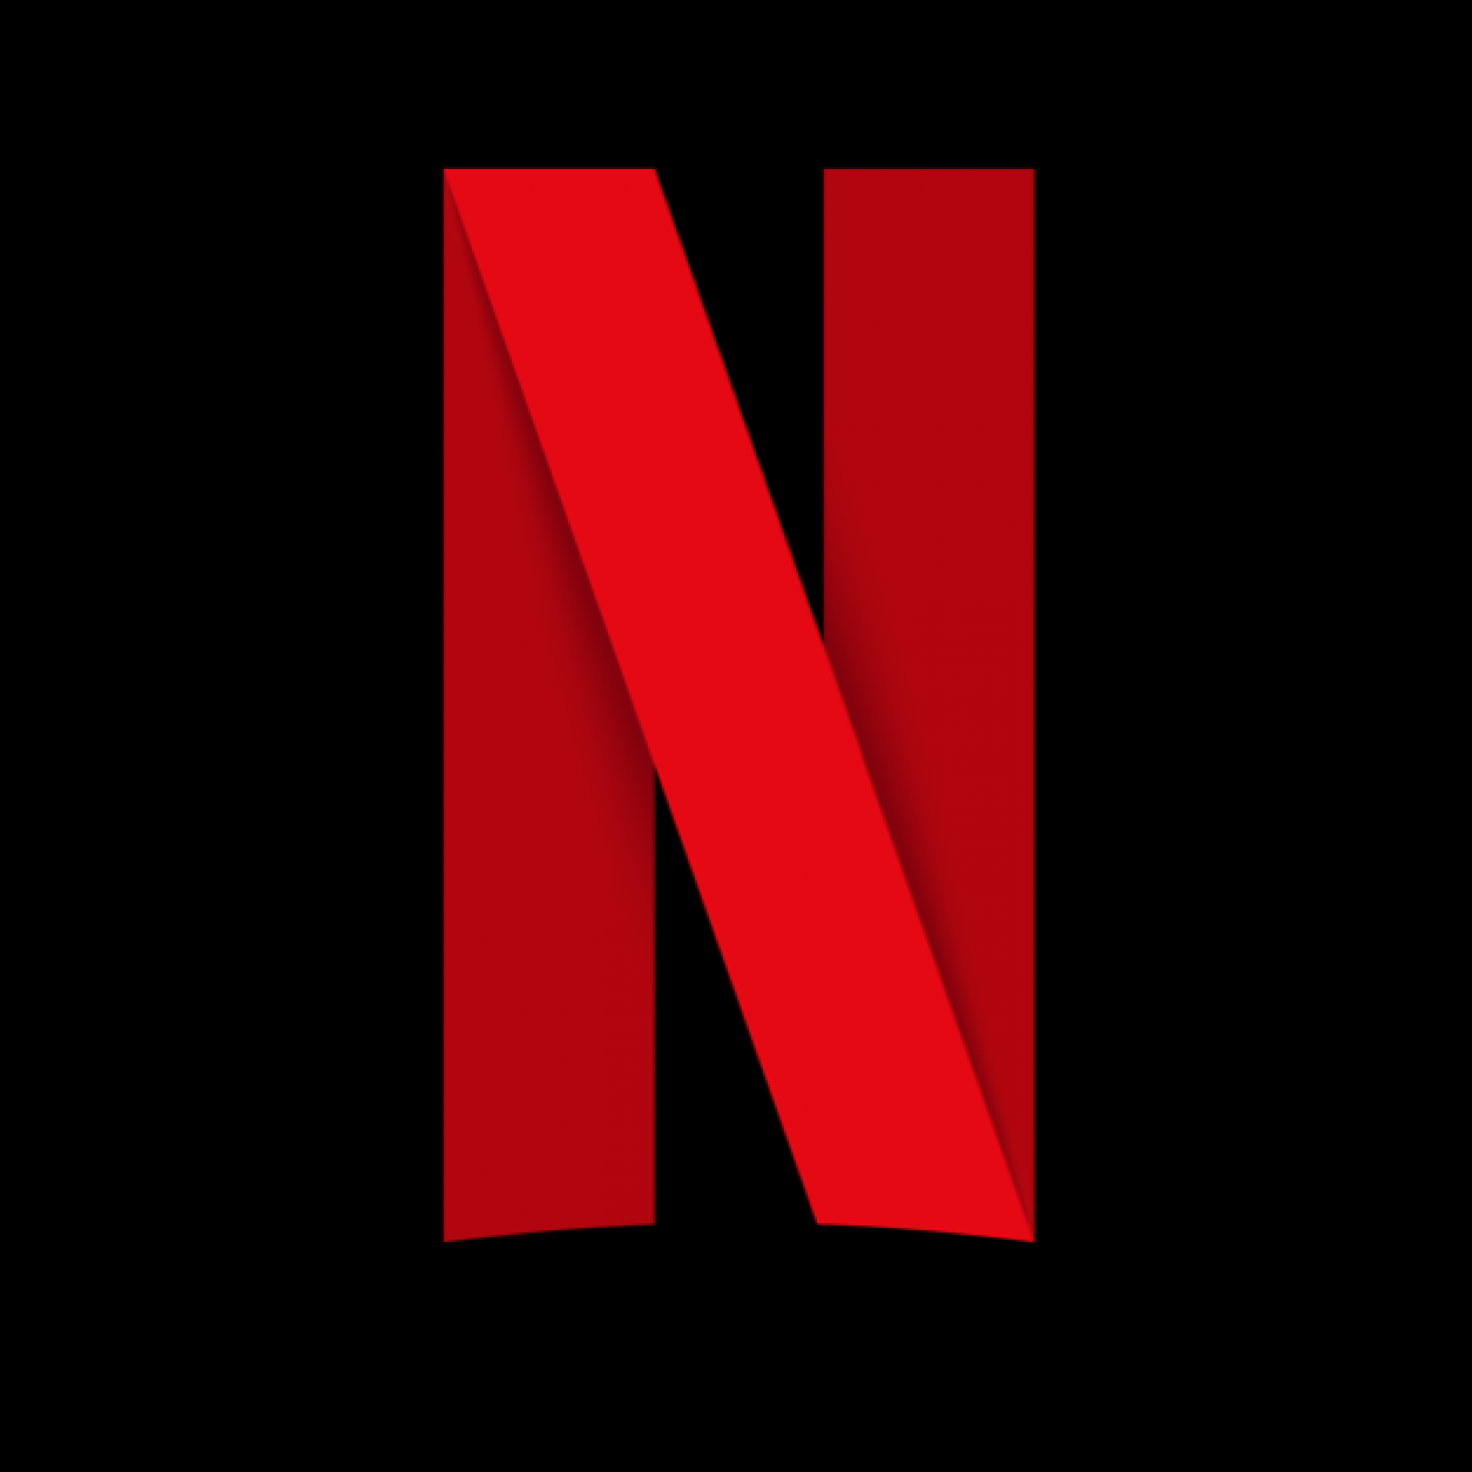 Netflix CEO Invests $120 Million Into HBCUs To Lower Student Debt